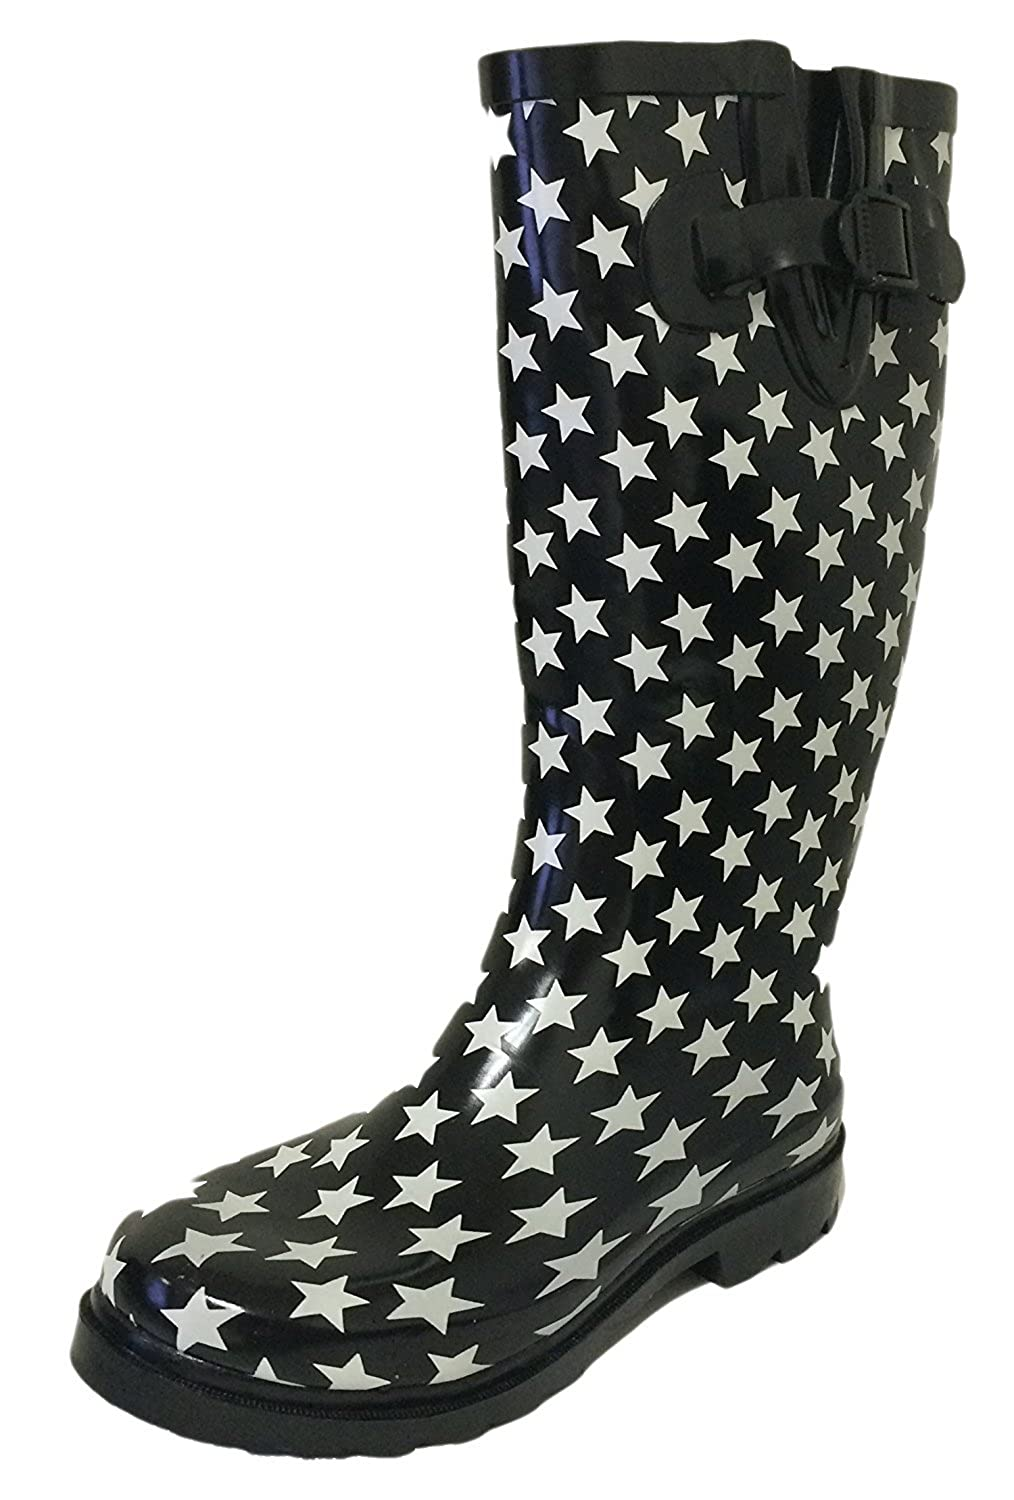 Black White Stars G4U Women's Rain Boots Multiple Styles color Mid Calf Wellies Buckle Fashion Rubber Knee High Snow shoes